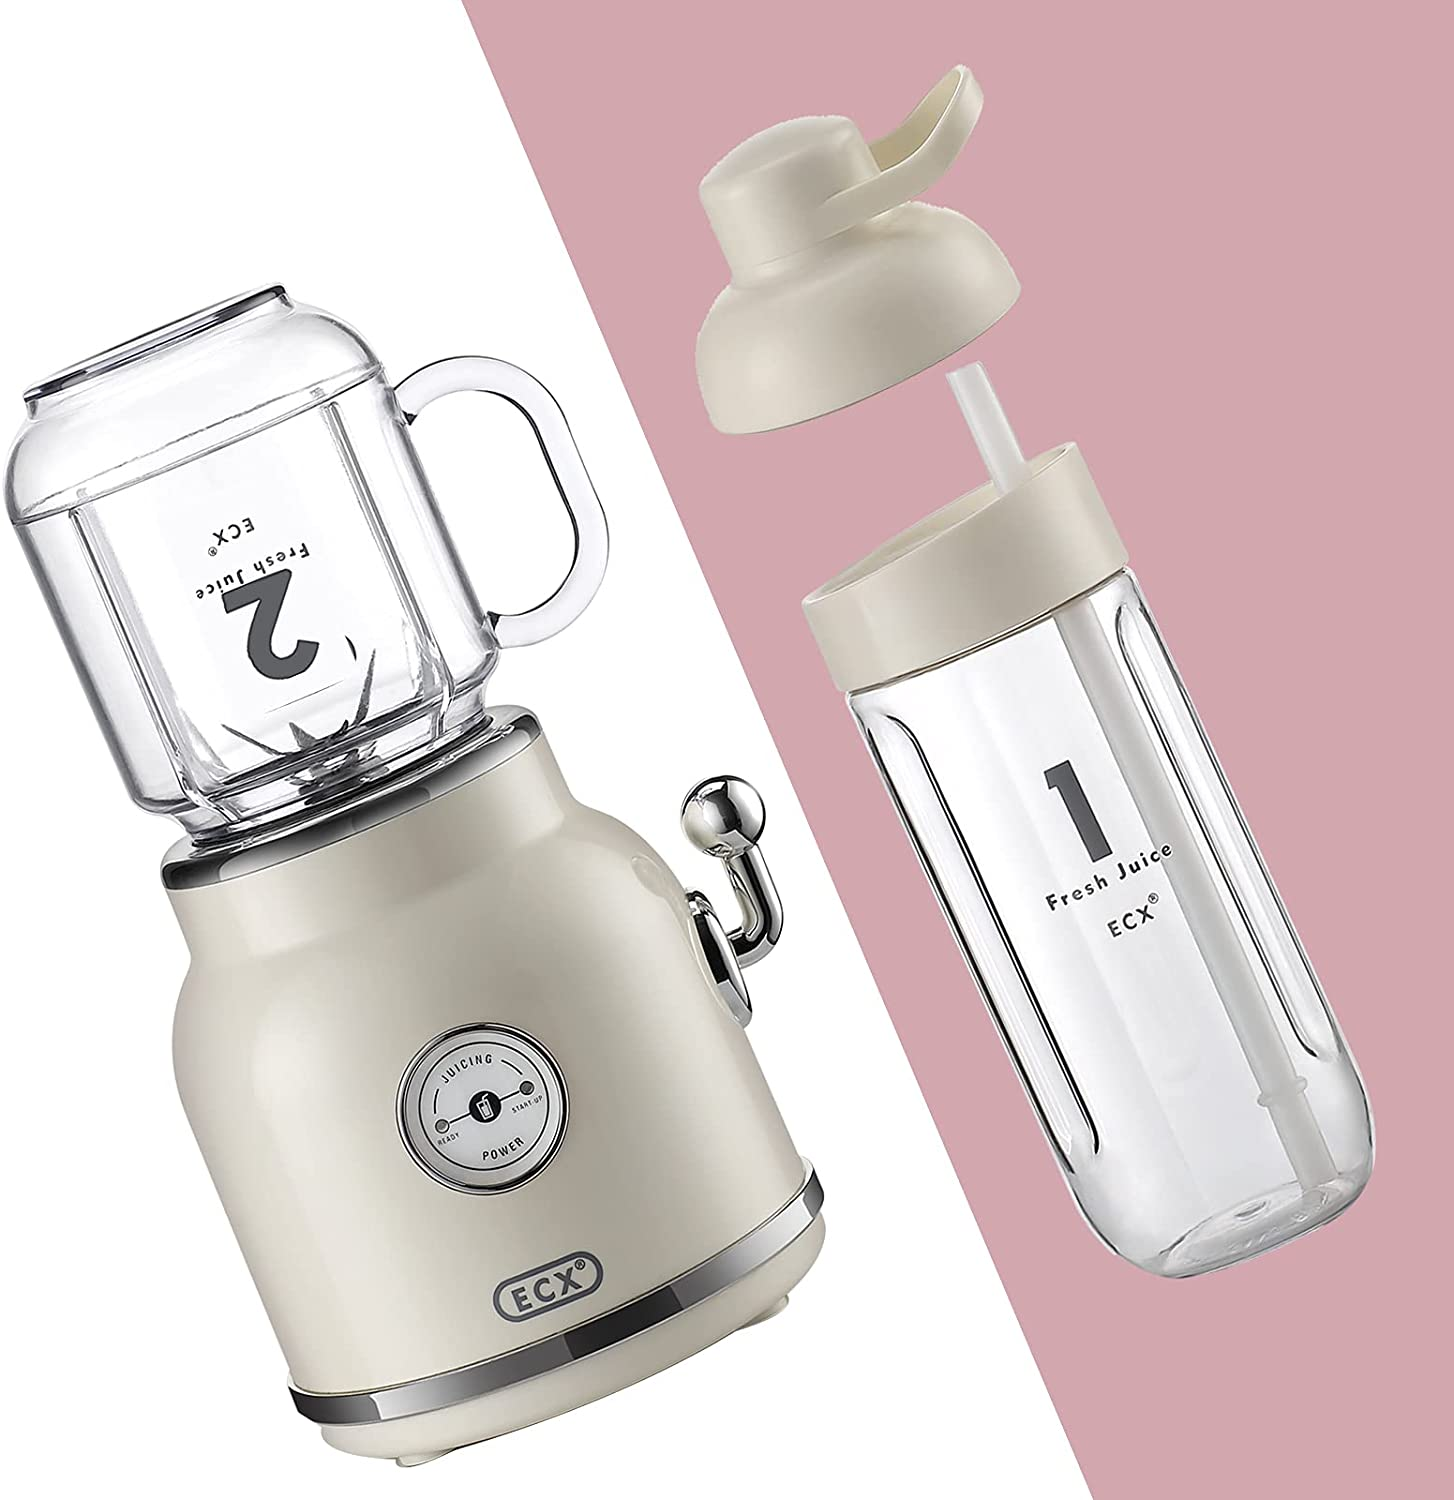 ECX Smoothie Blender Maker, Personal Blender for Shakes and Smoothies with 20.3 oz Tritan BPA-Free Travel Cup and Lid, Cream